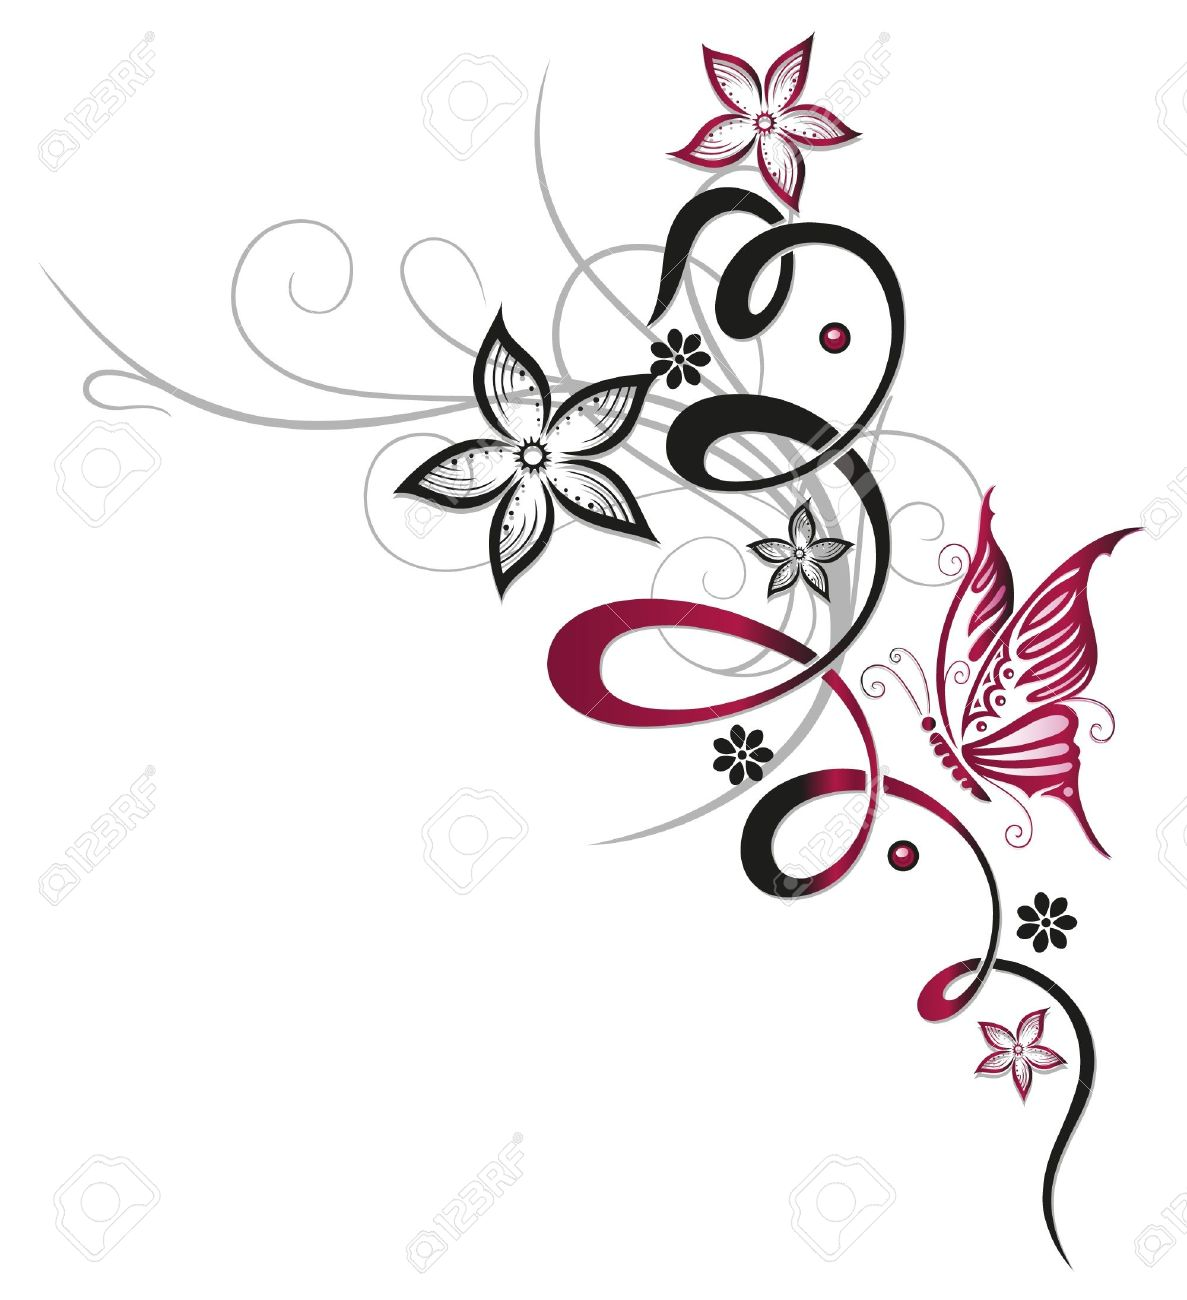 tendril with decorative flowers red and black stock vector 21684015 - Decorative Flowers